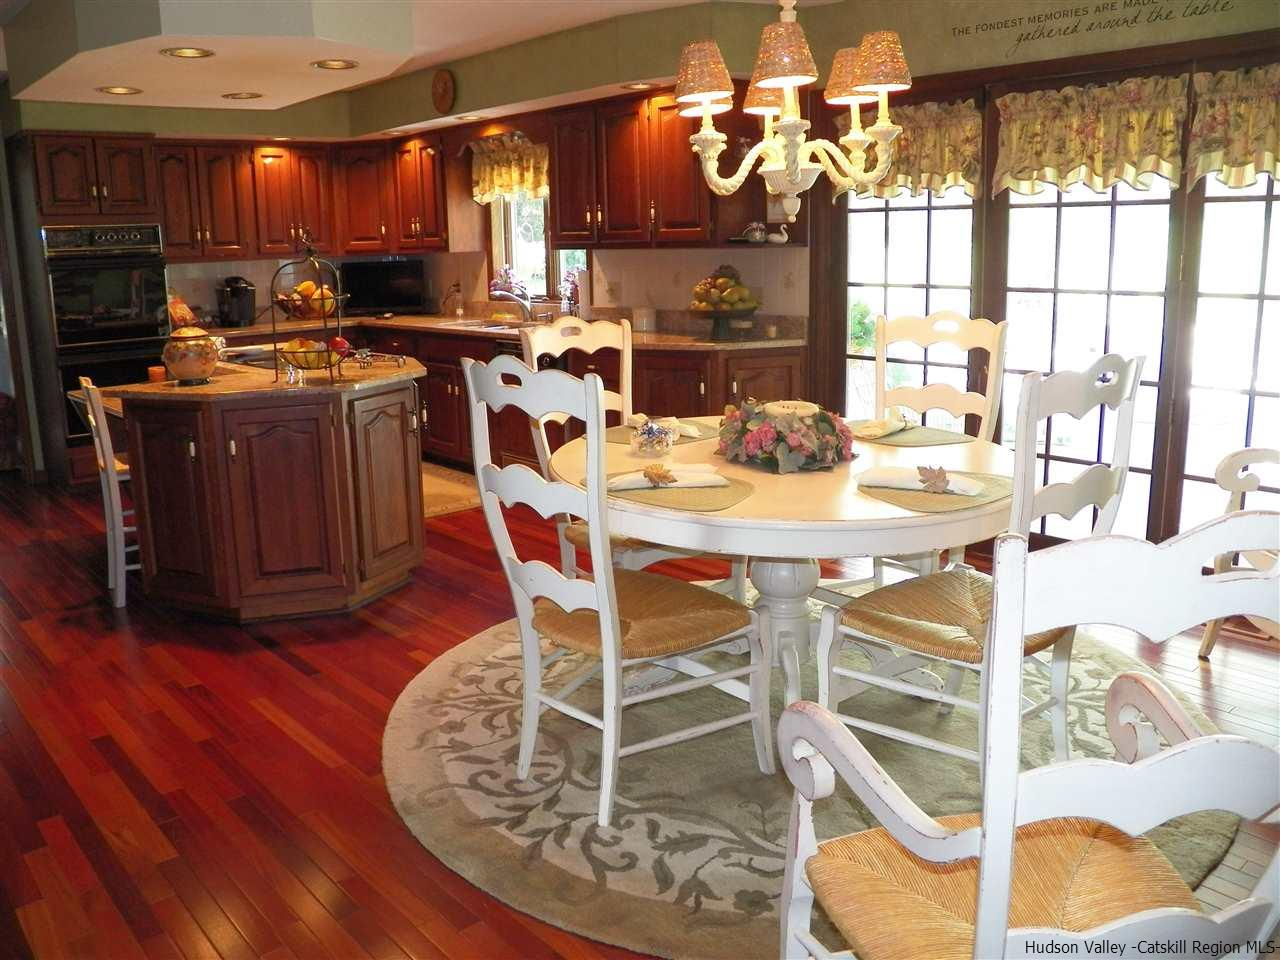 Additional photo for property listing at 7 Bray Farm Lane 7 Bray Farm Lane Wappingers Falls, New York 12590 United States